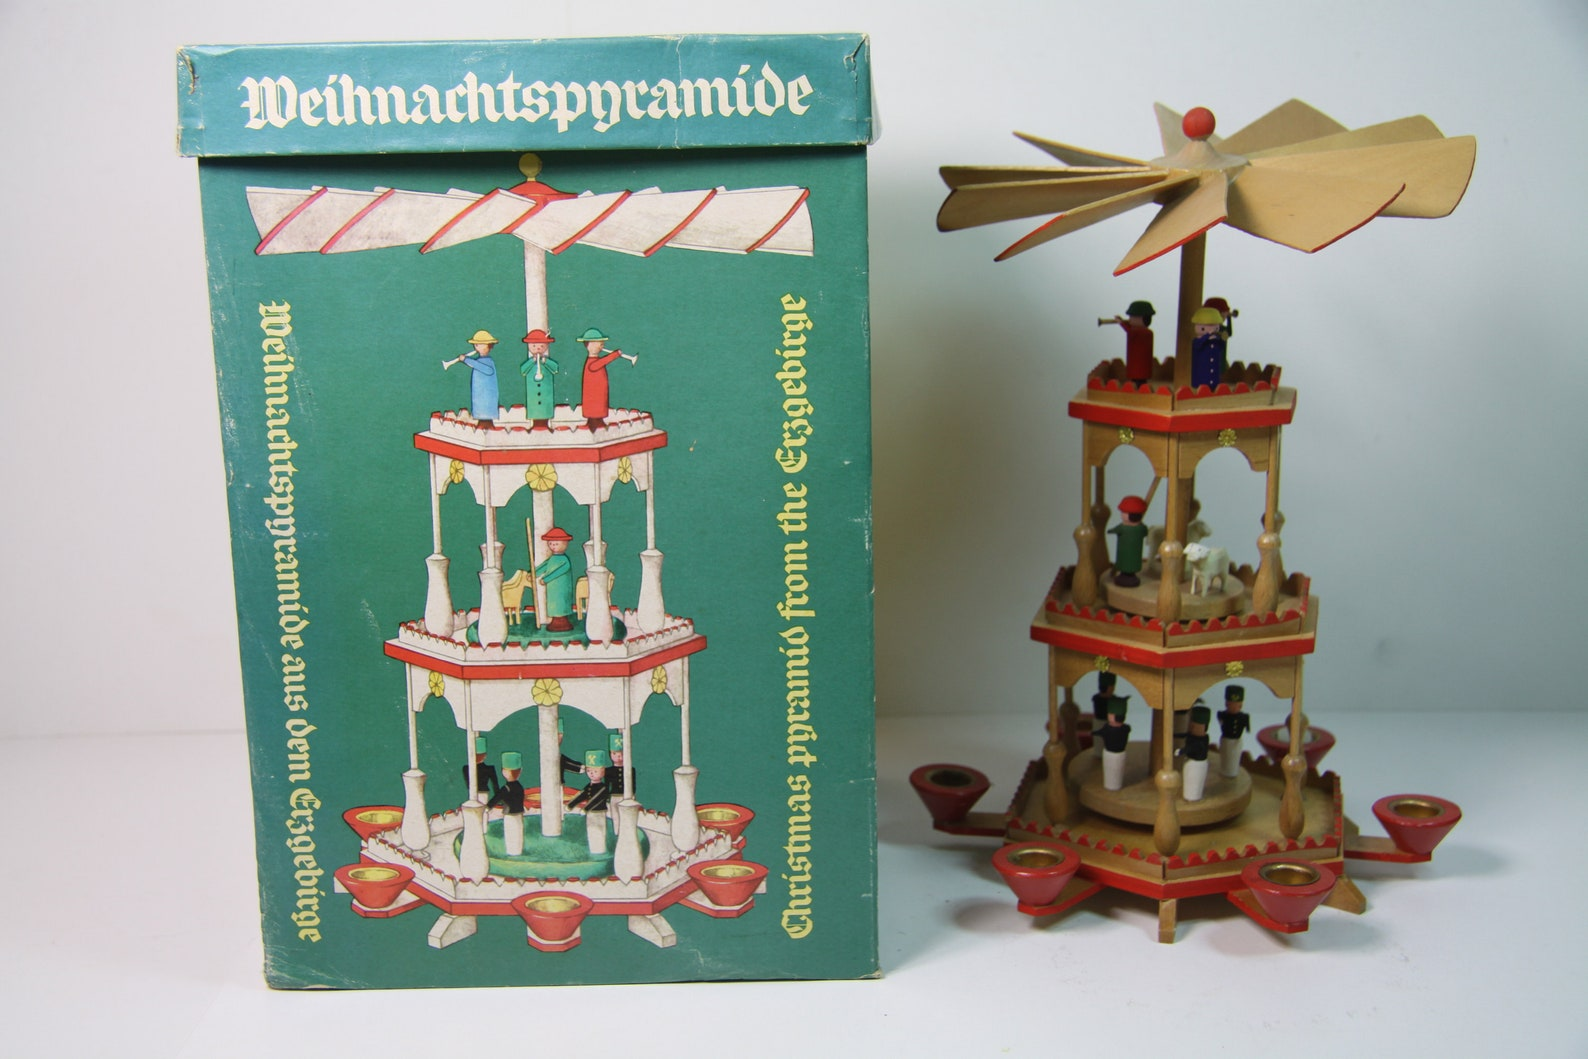 Very old exclusive Erzgebirge Christmas Pyramid, German carousel,handmade Christmas Caroussel,erzgebirge candle holder,Christmas windmill